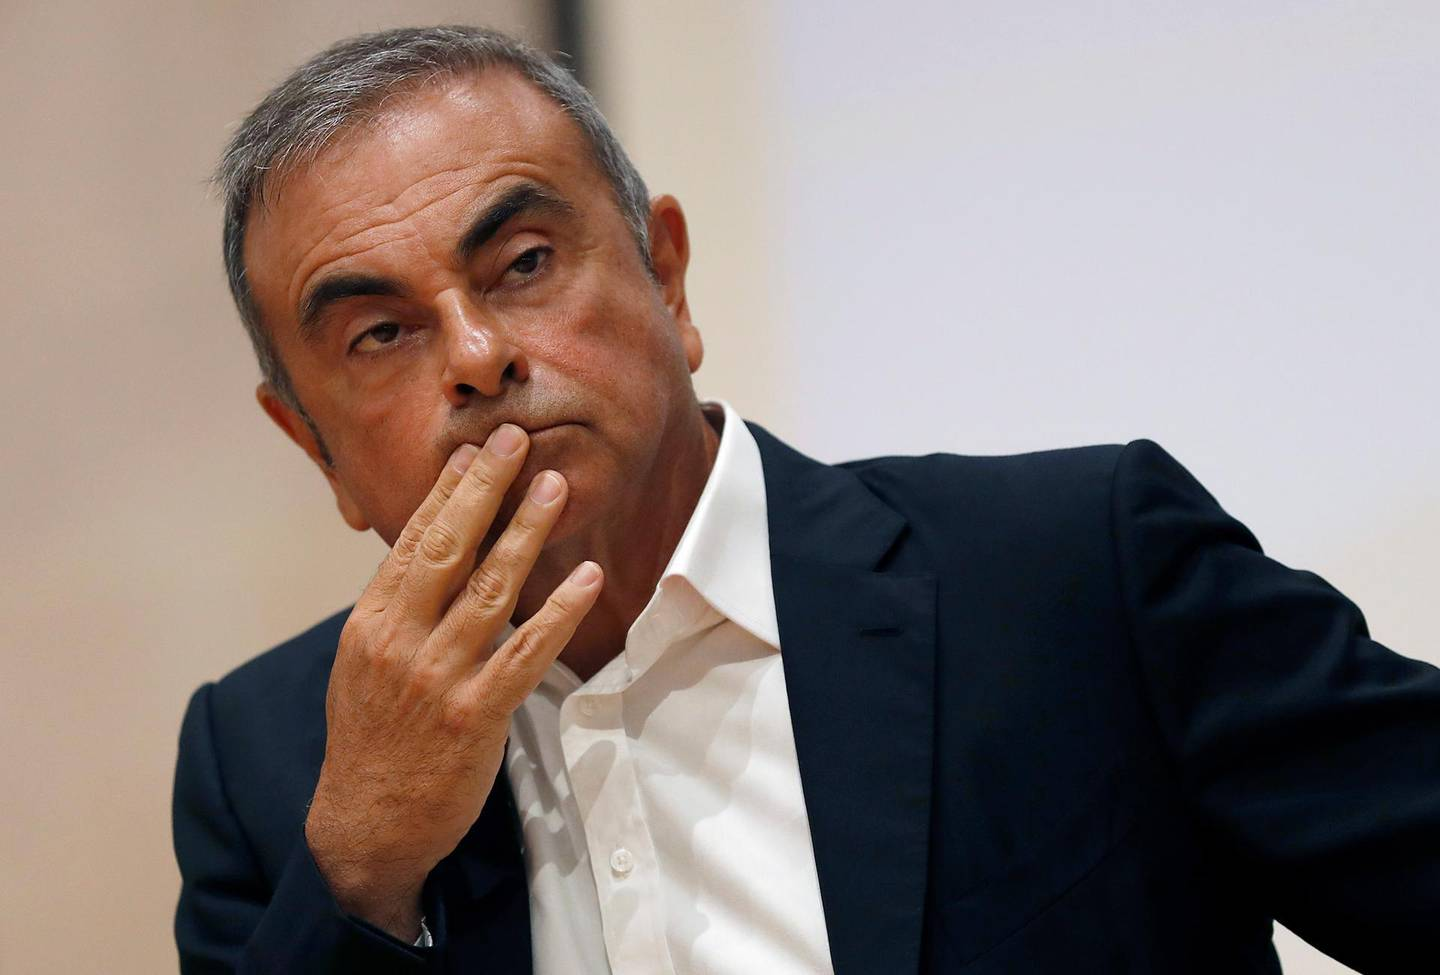 """FILE - In this Sept. 29, 2020, file photo, former Nissan Motor Co. Chairman Carlos Ghosn holds a press conference at the Maronite Christian Holy Spirit University of Kaslik, as he launches an initiative to help Lebanon that is undergoing a severe economic and financial crisis, in Kaslik, north of Beirut, Lebanon. Former Nissan Chief Executive Hiroto Saikawa told a Japanese court Wednesday, Feb. 24, 2021, he believed the compensation for his predecessor Carlos Ghosn was too low """"by international standards,"""" and so he supported Ghosn's retirement packages to prevent him from leaving.  (AP Photo/Hussein Malla, File)"""